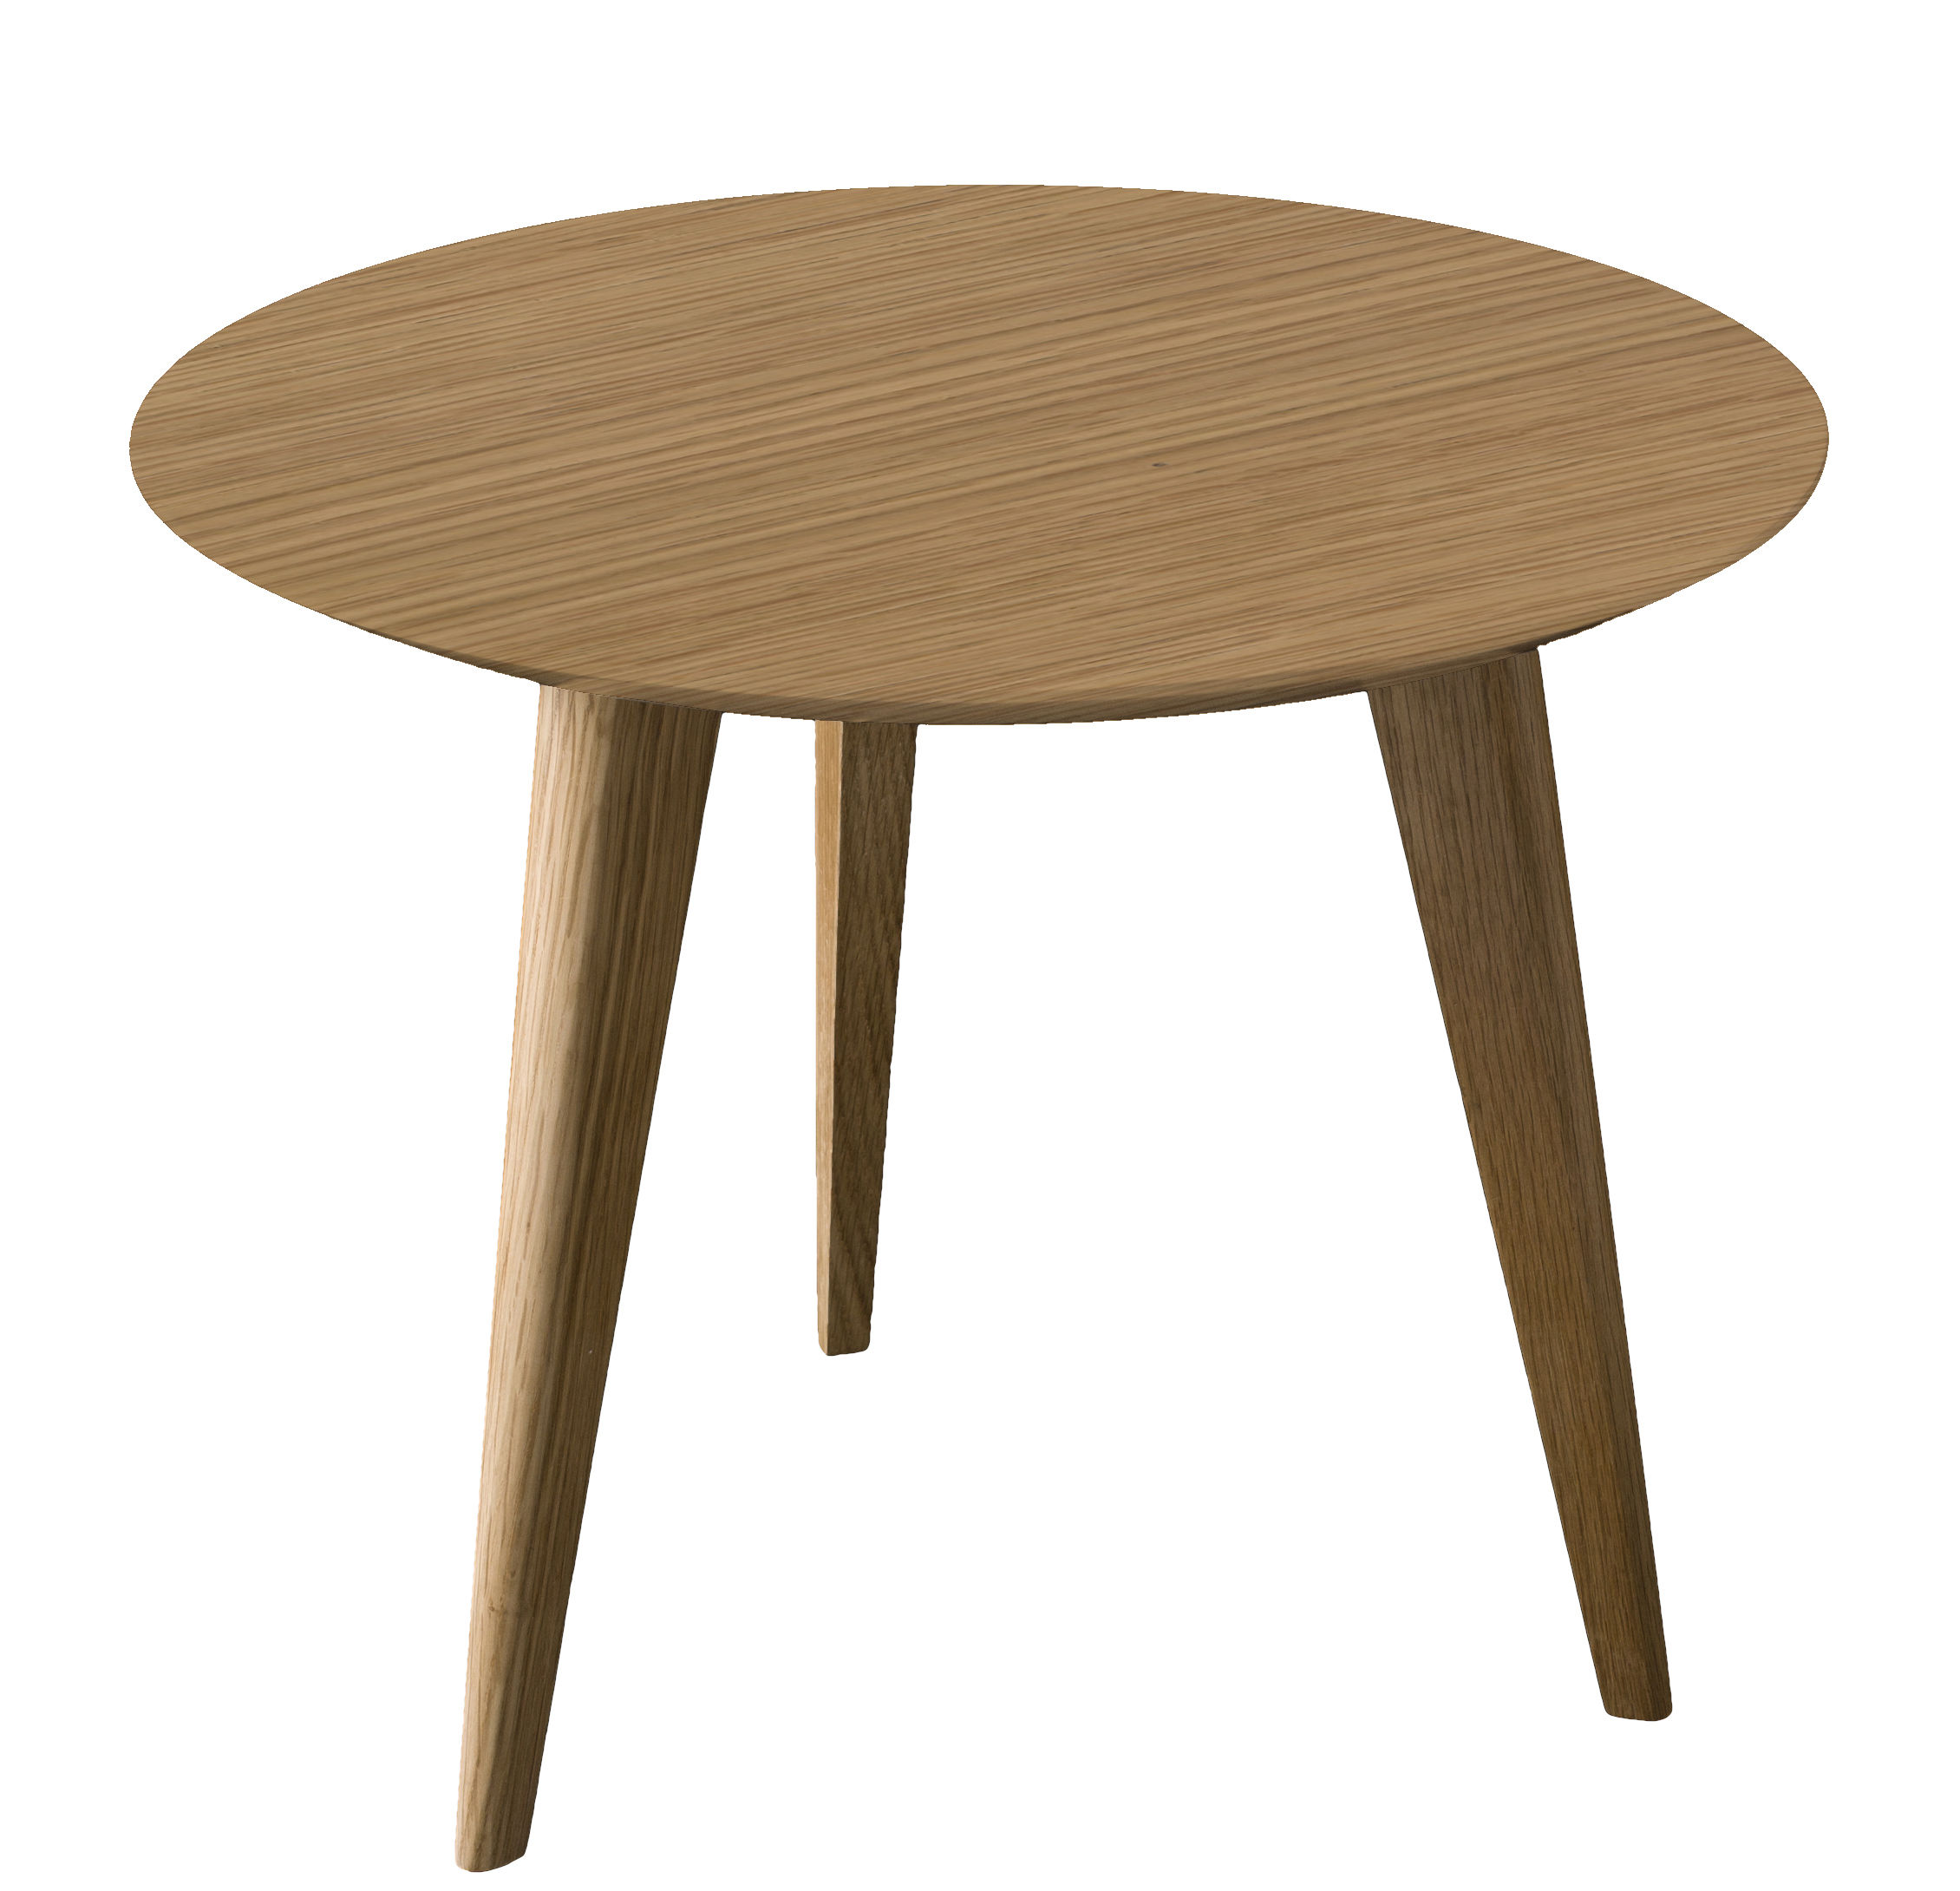 Lalinde ronde coffee table oak wood legs by sentou edition for Table ronde design 6 personnes